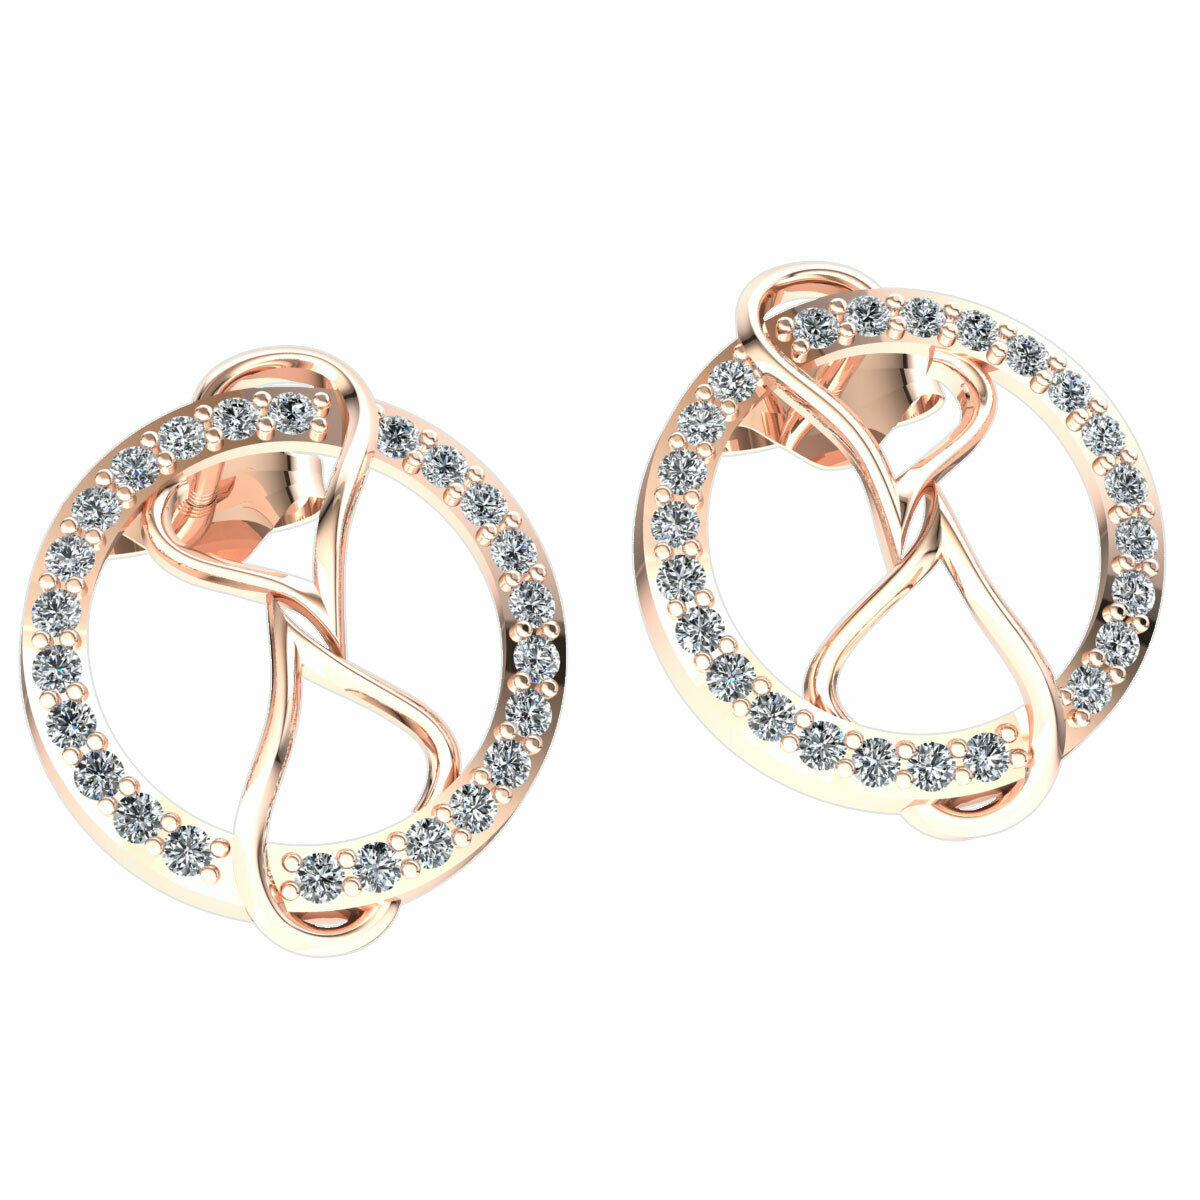 Genuine 0.3ct Round Cut Diamond Ladies Circle Hearts Earrings Solid 14K gold